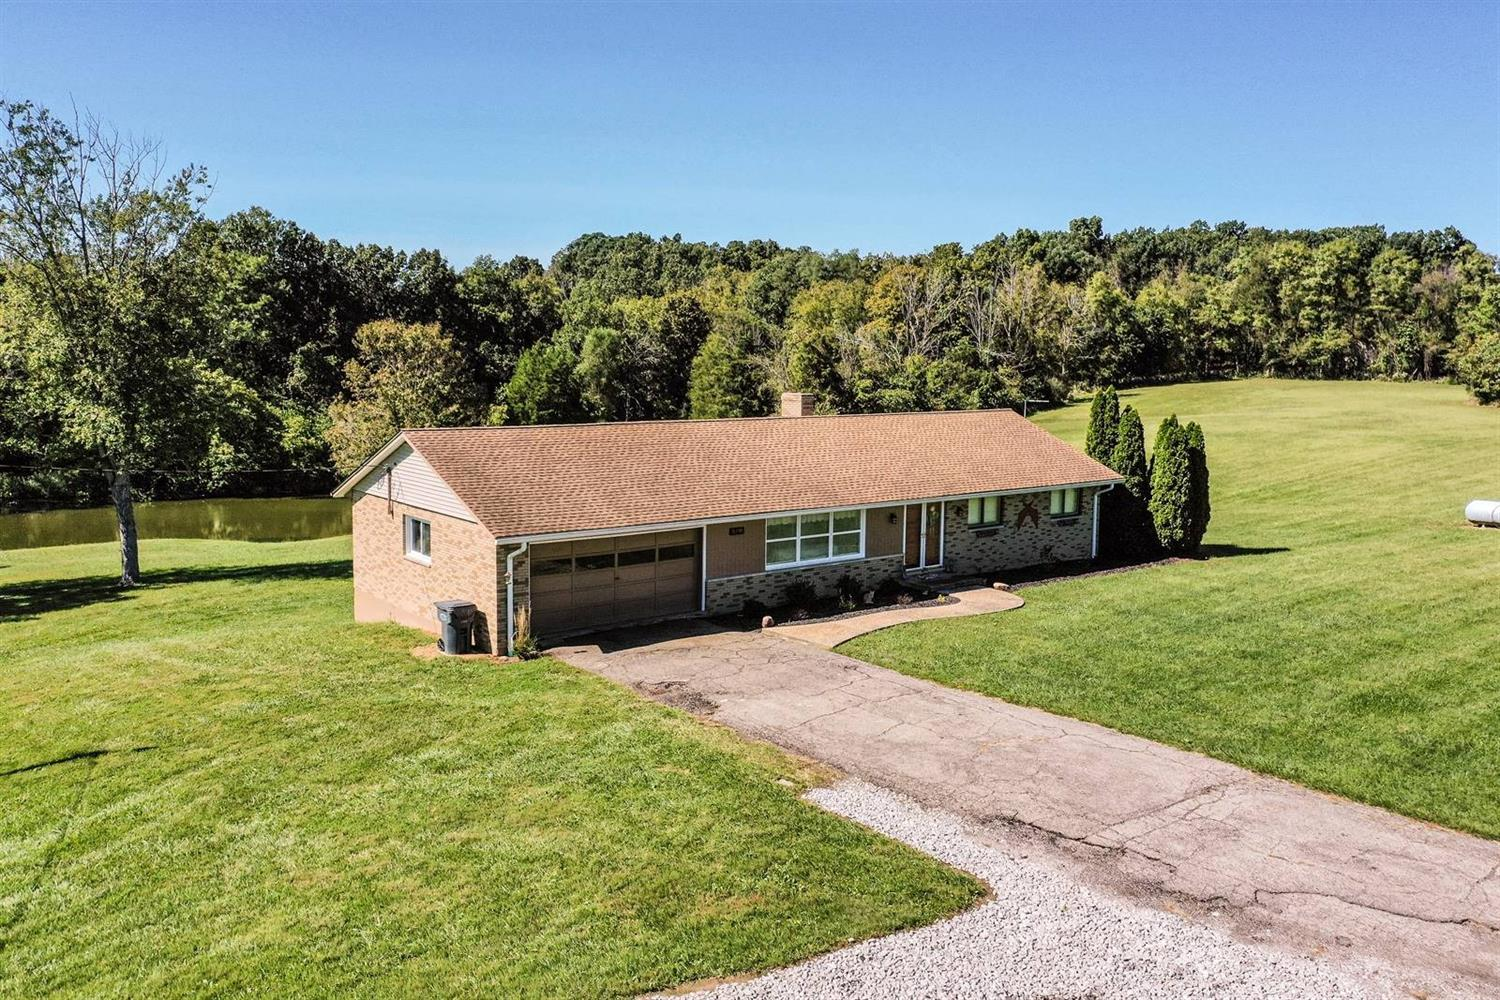 15403 Ireland Drive, Moores Hill, Indiana 47032, 3 Bedrooms Bedrooms, 5 Rooms Rooms,2 BathroomsBathrooms,Single Family Residence,For Sale,Ireland,1720524